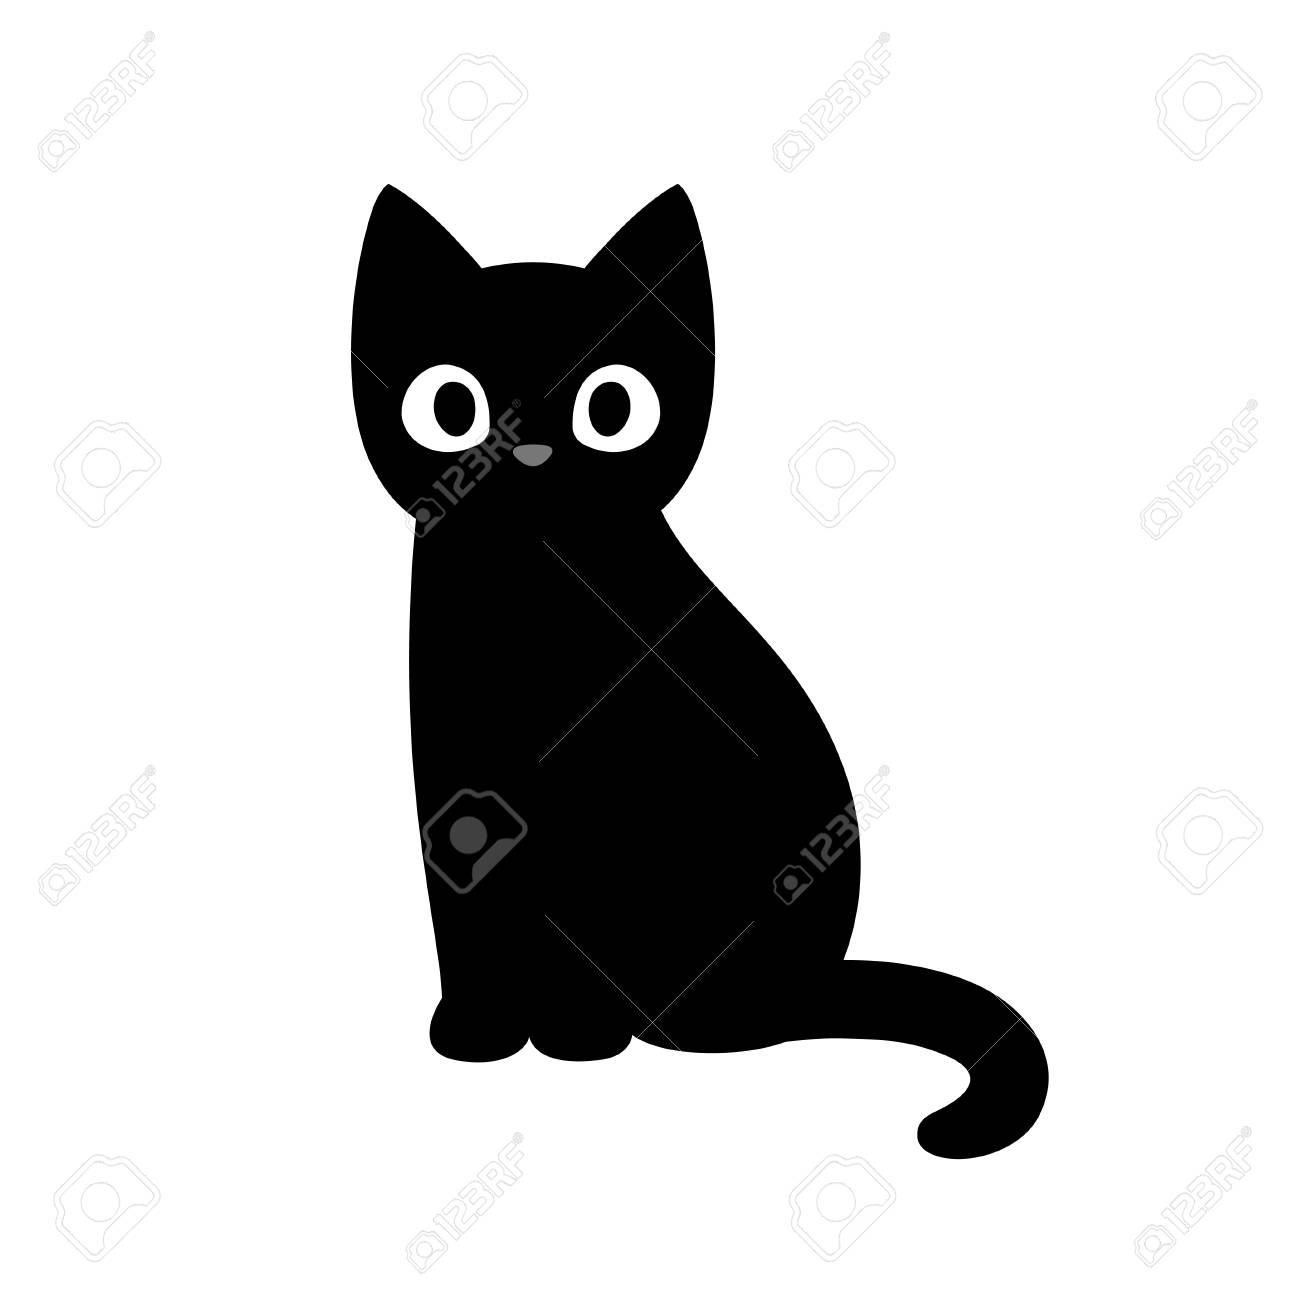 Cartoon Black Cat Drawing Simple And Cute Kitten Silhouette Royalty Free Cliparts Vectors And Stock Illustration Image 111672456